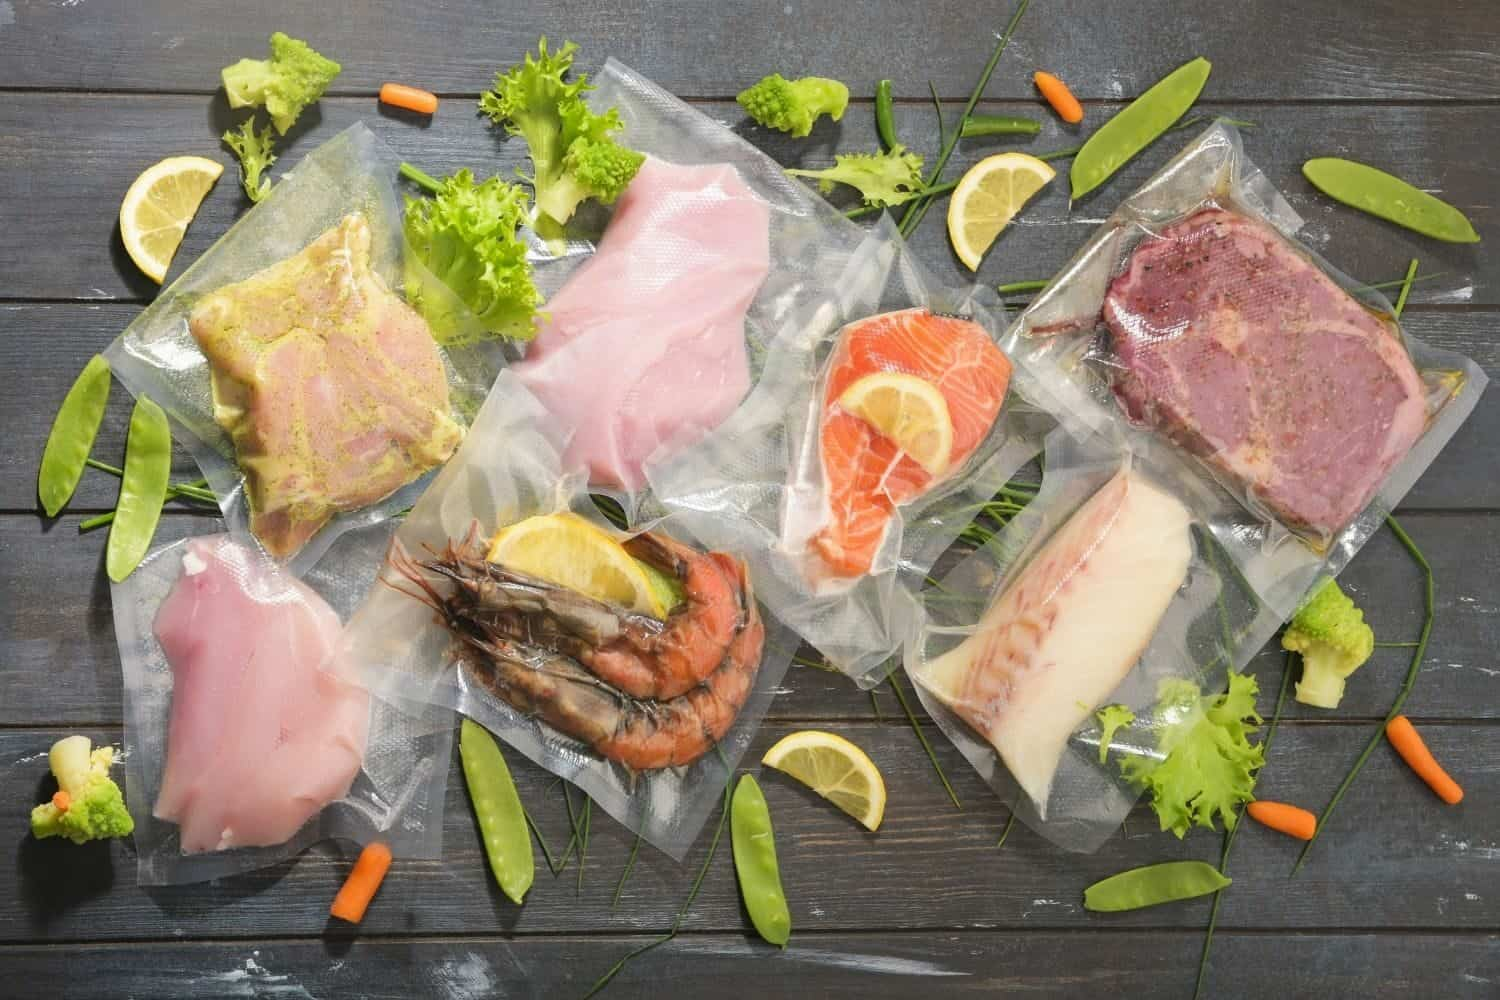 How to sous vide and what does it mean to sous vide when cooking?